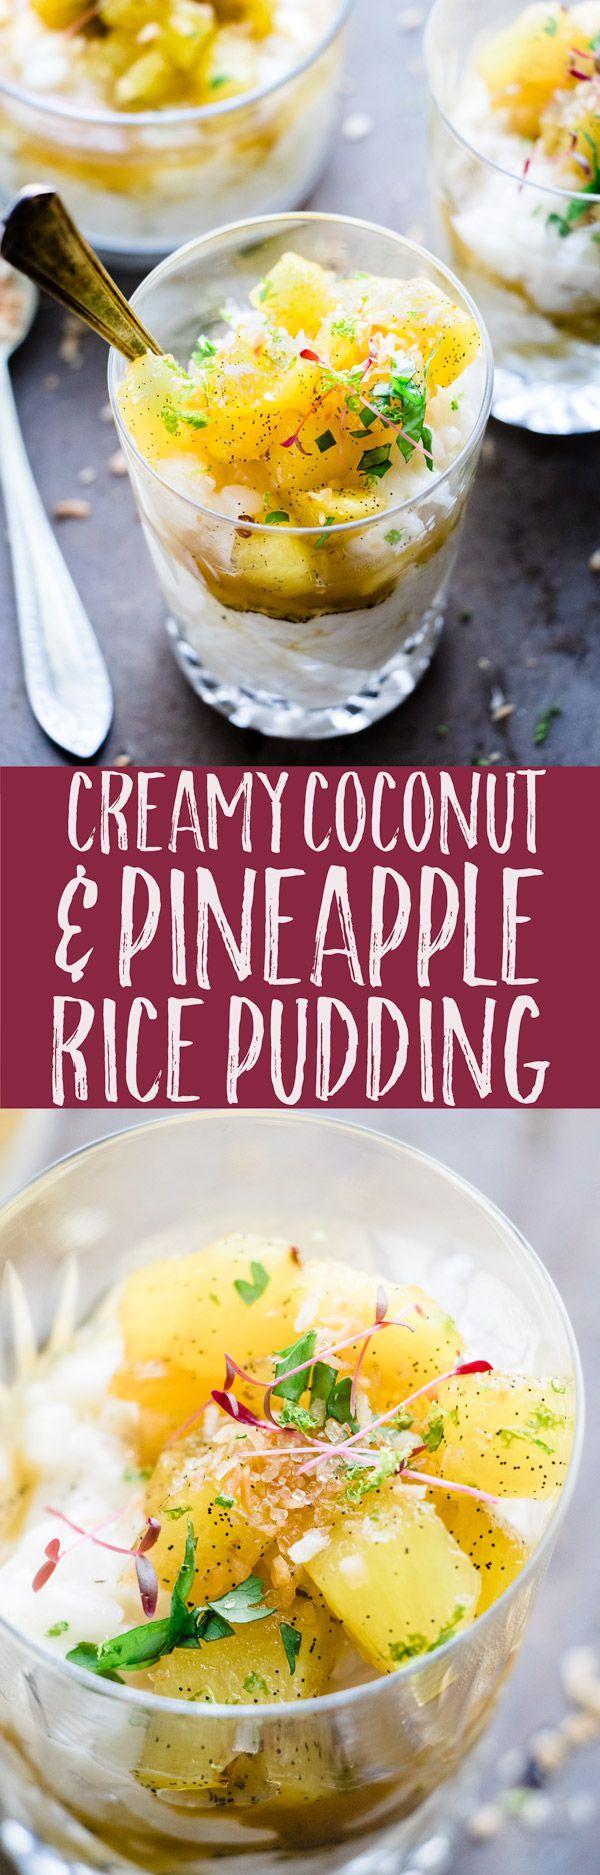 This warm and creamy coconut rice pudding is a the perfect comfort dessert. It's made with fragrant kaffir lime and coconut milk. Topped with vanilla and brown sugar pineapple, it's family friendly and vegan. Ready in 25 minutes. via @saltedmint1